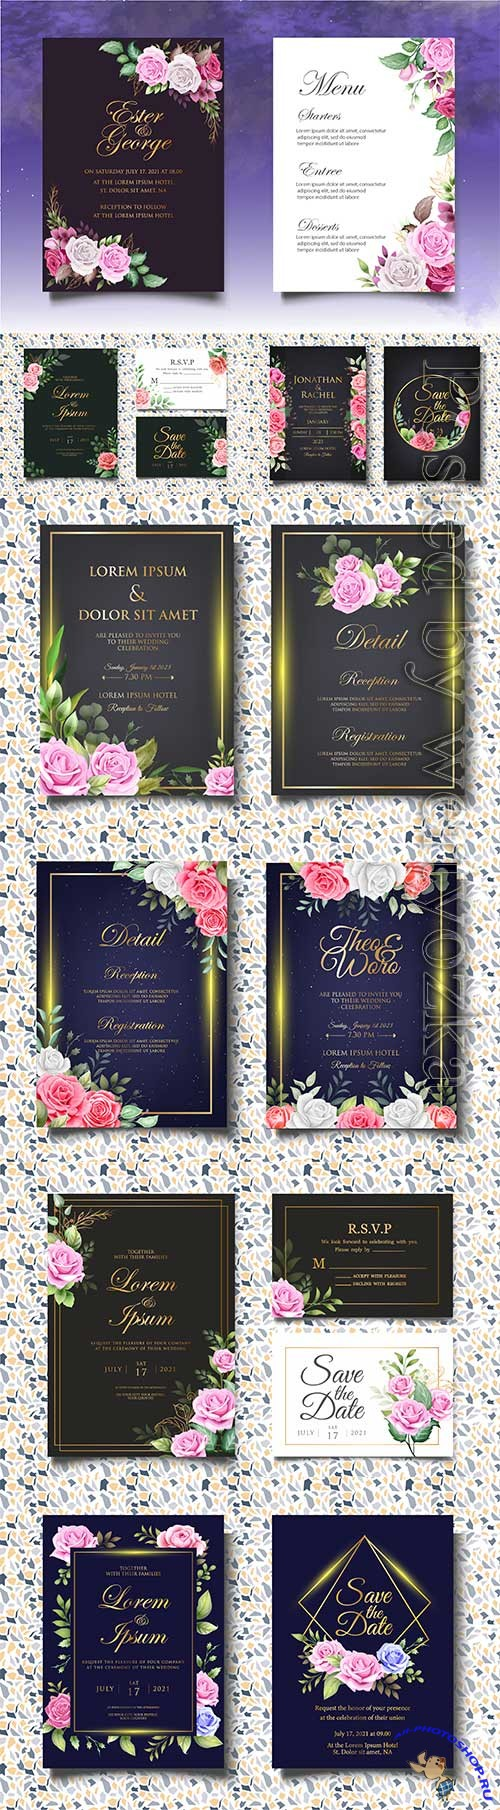 Beautiful invitation wedding card with decoration